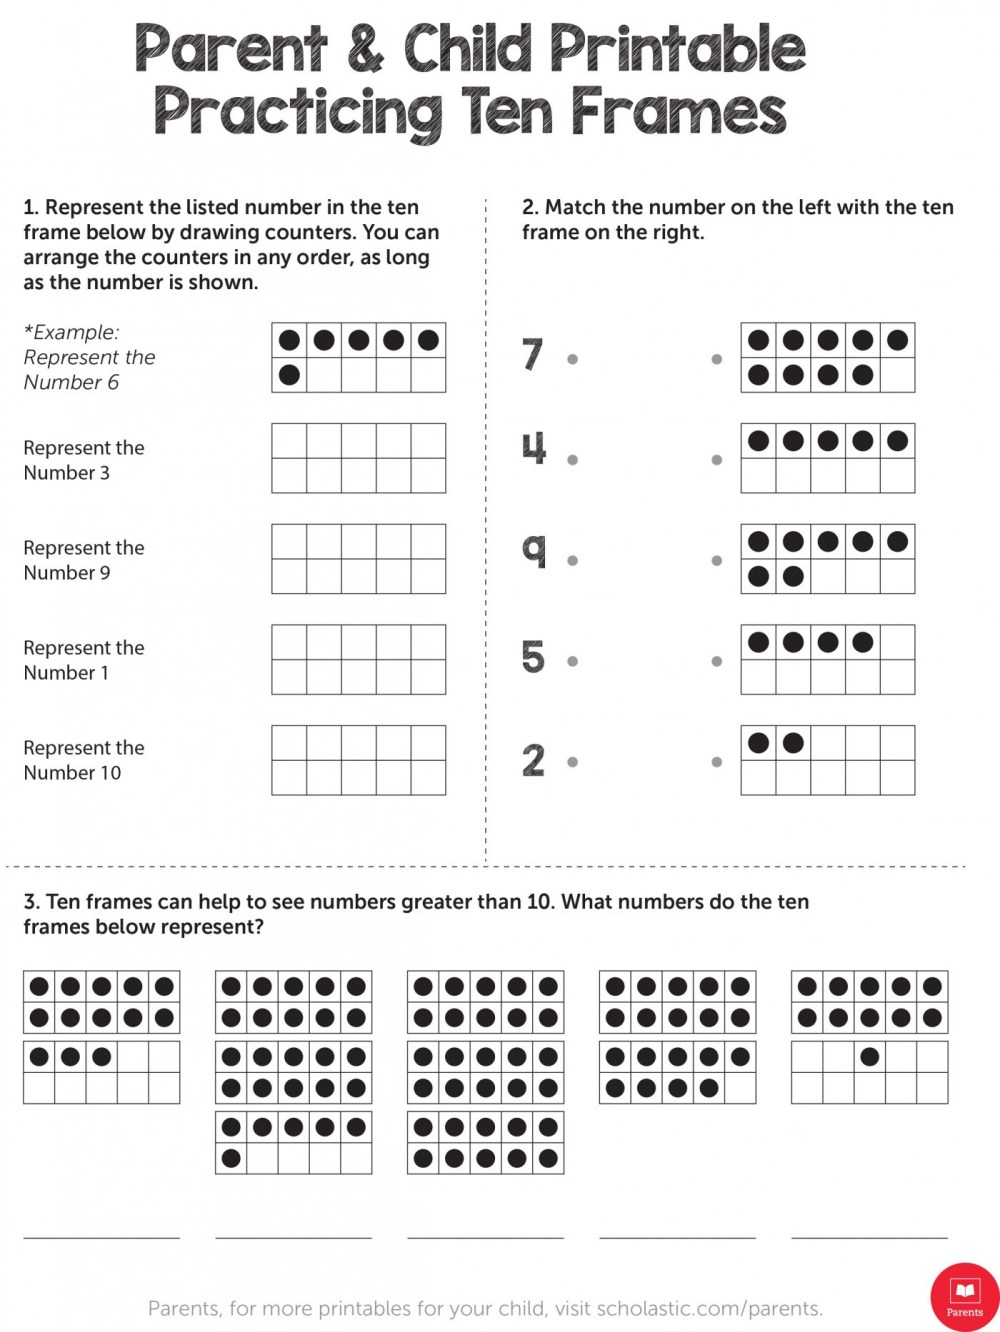 medium resolution of 4 Free Math Worksheets Second Grade 2 Addition Adding 3 Digit and 1 Digit  Numbers - apocalomegaproductions.com